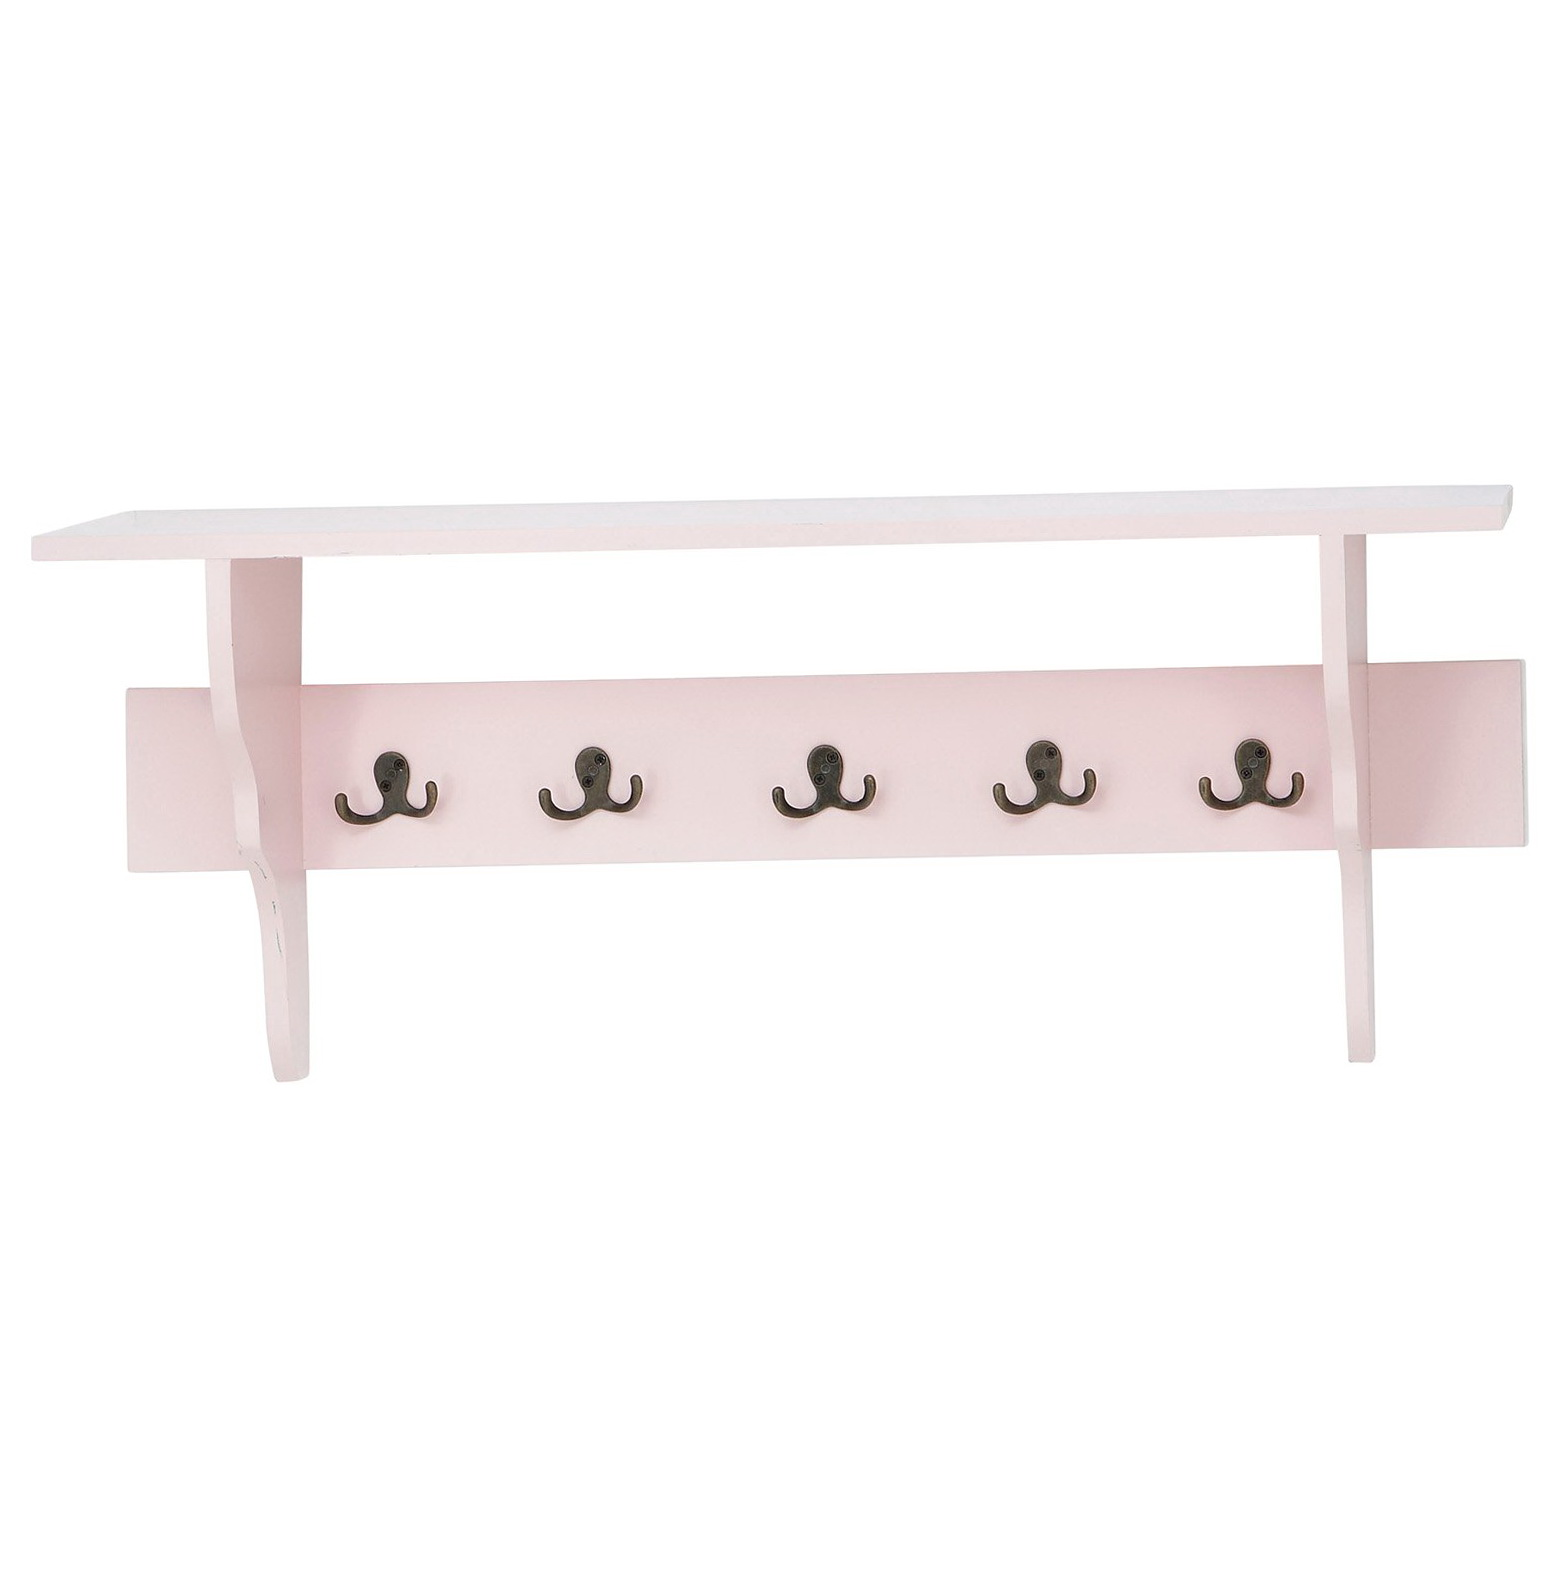 Decorative Wall Shelf With Hooks